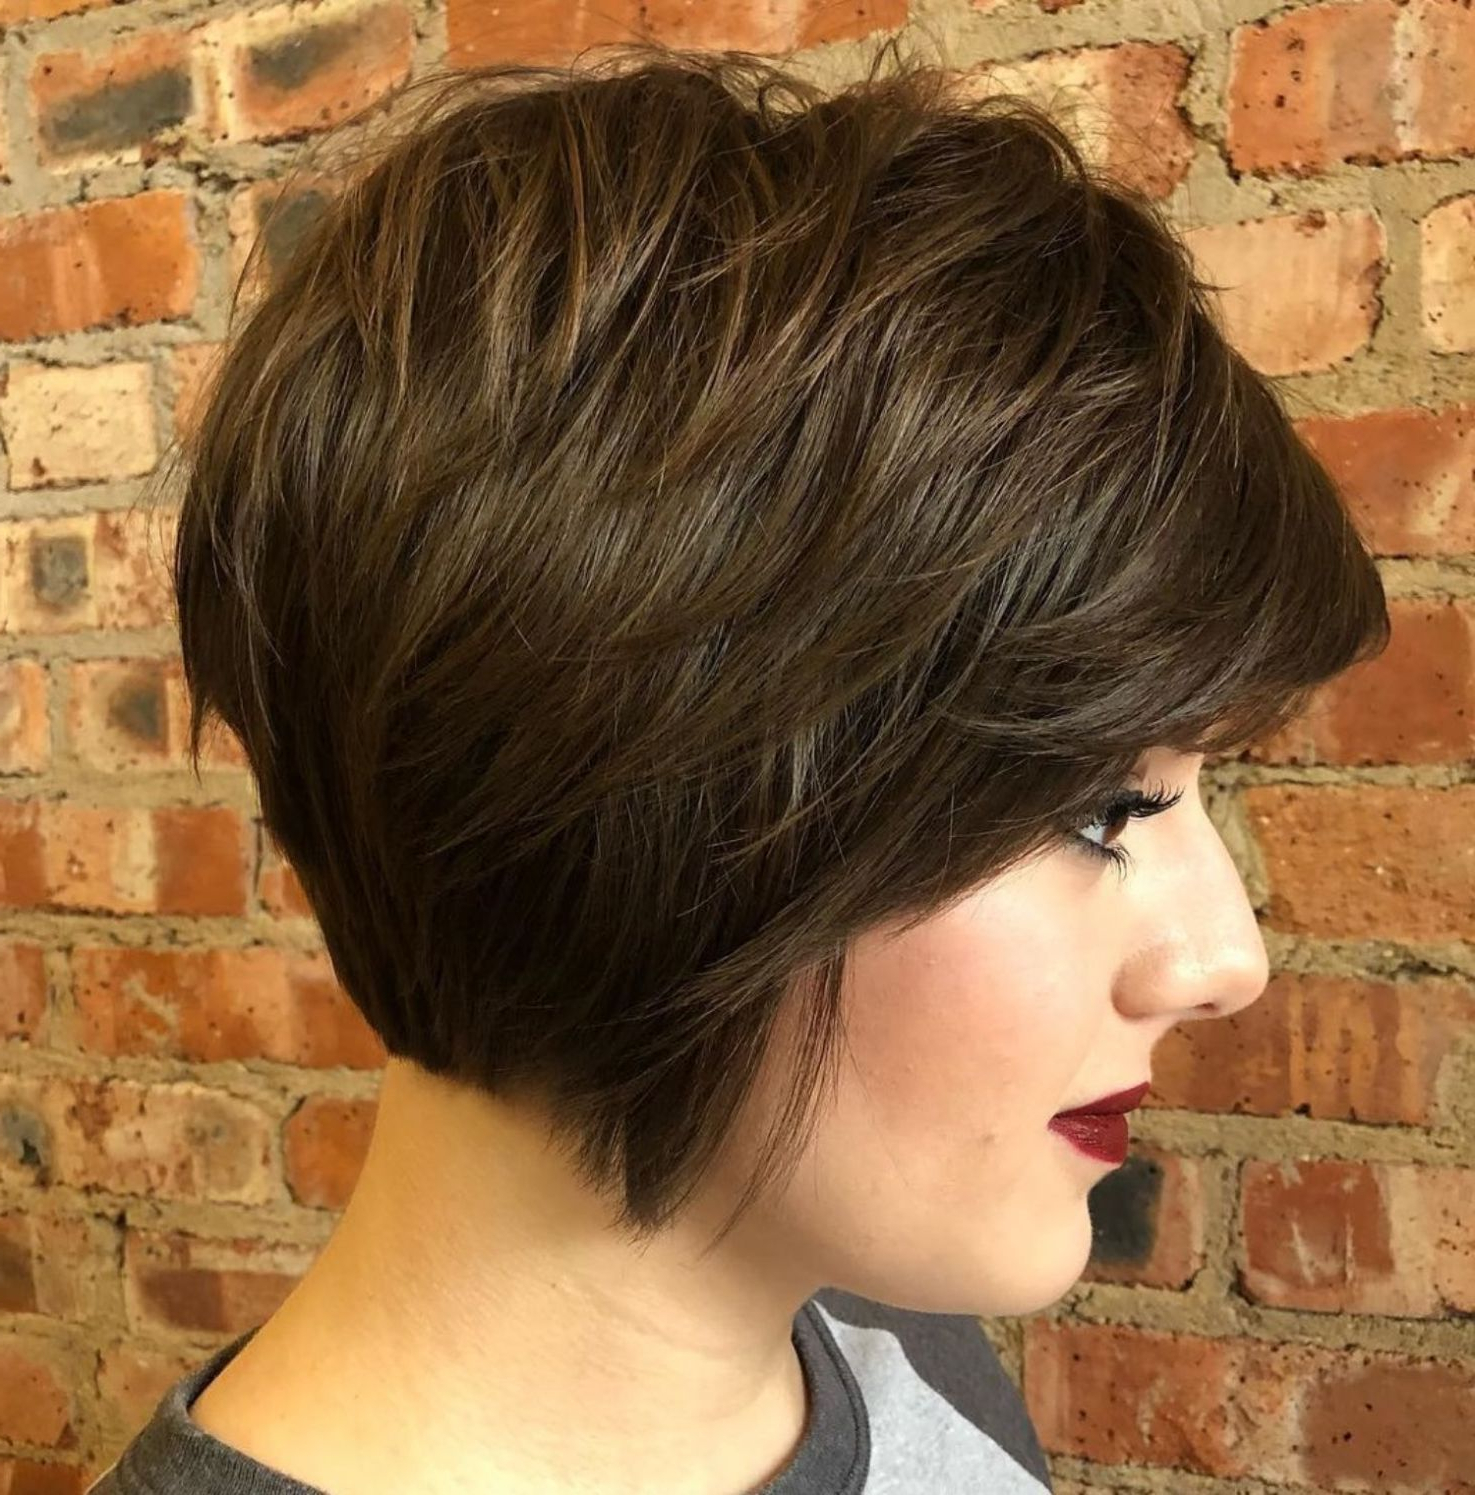 60 Short Shag Hairstyles That You Simply Can't Miss With Regard To Jaw Length Shaggy Bob Hairstyles (Gallery 5 of 20)